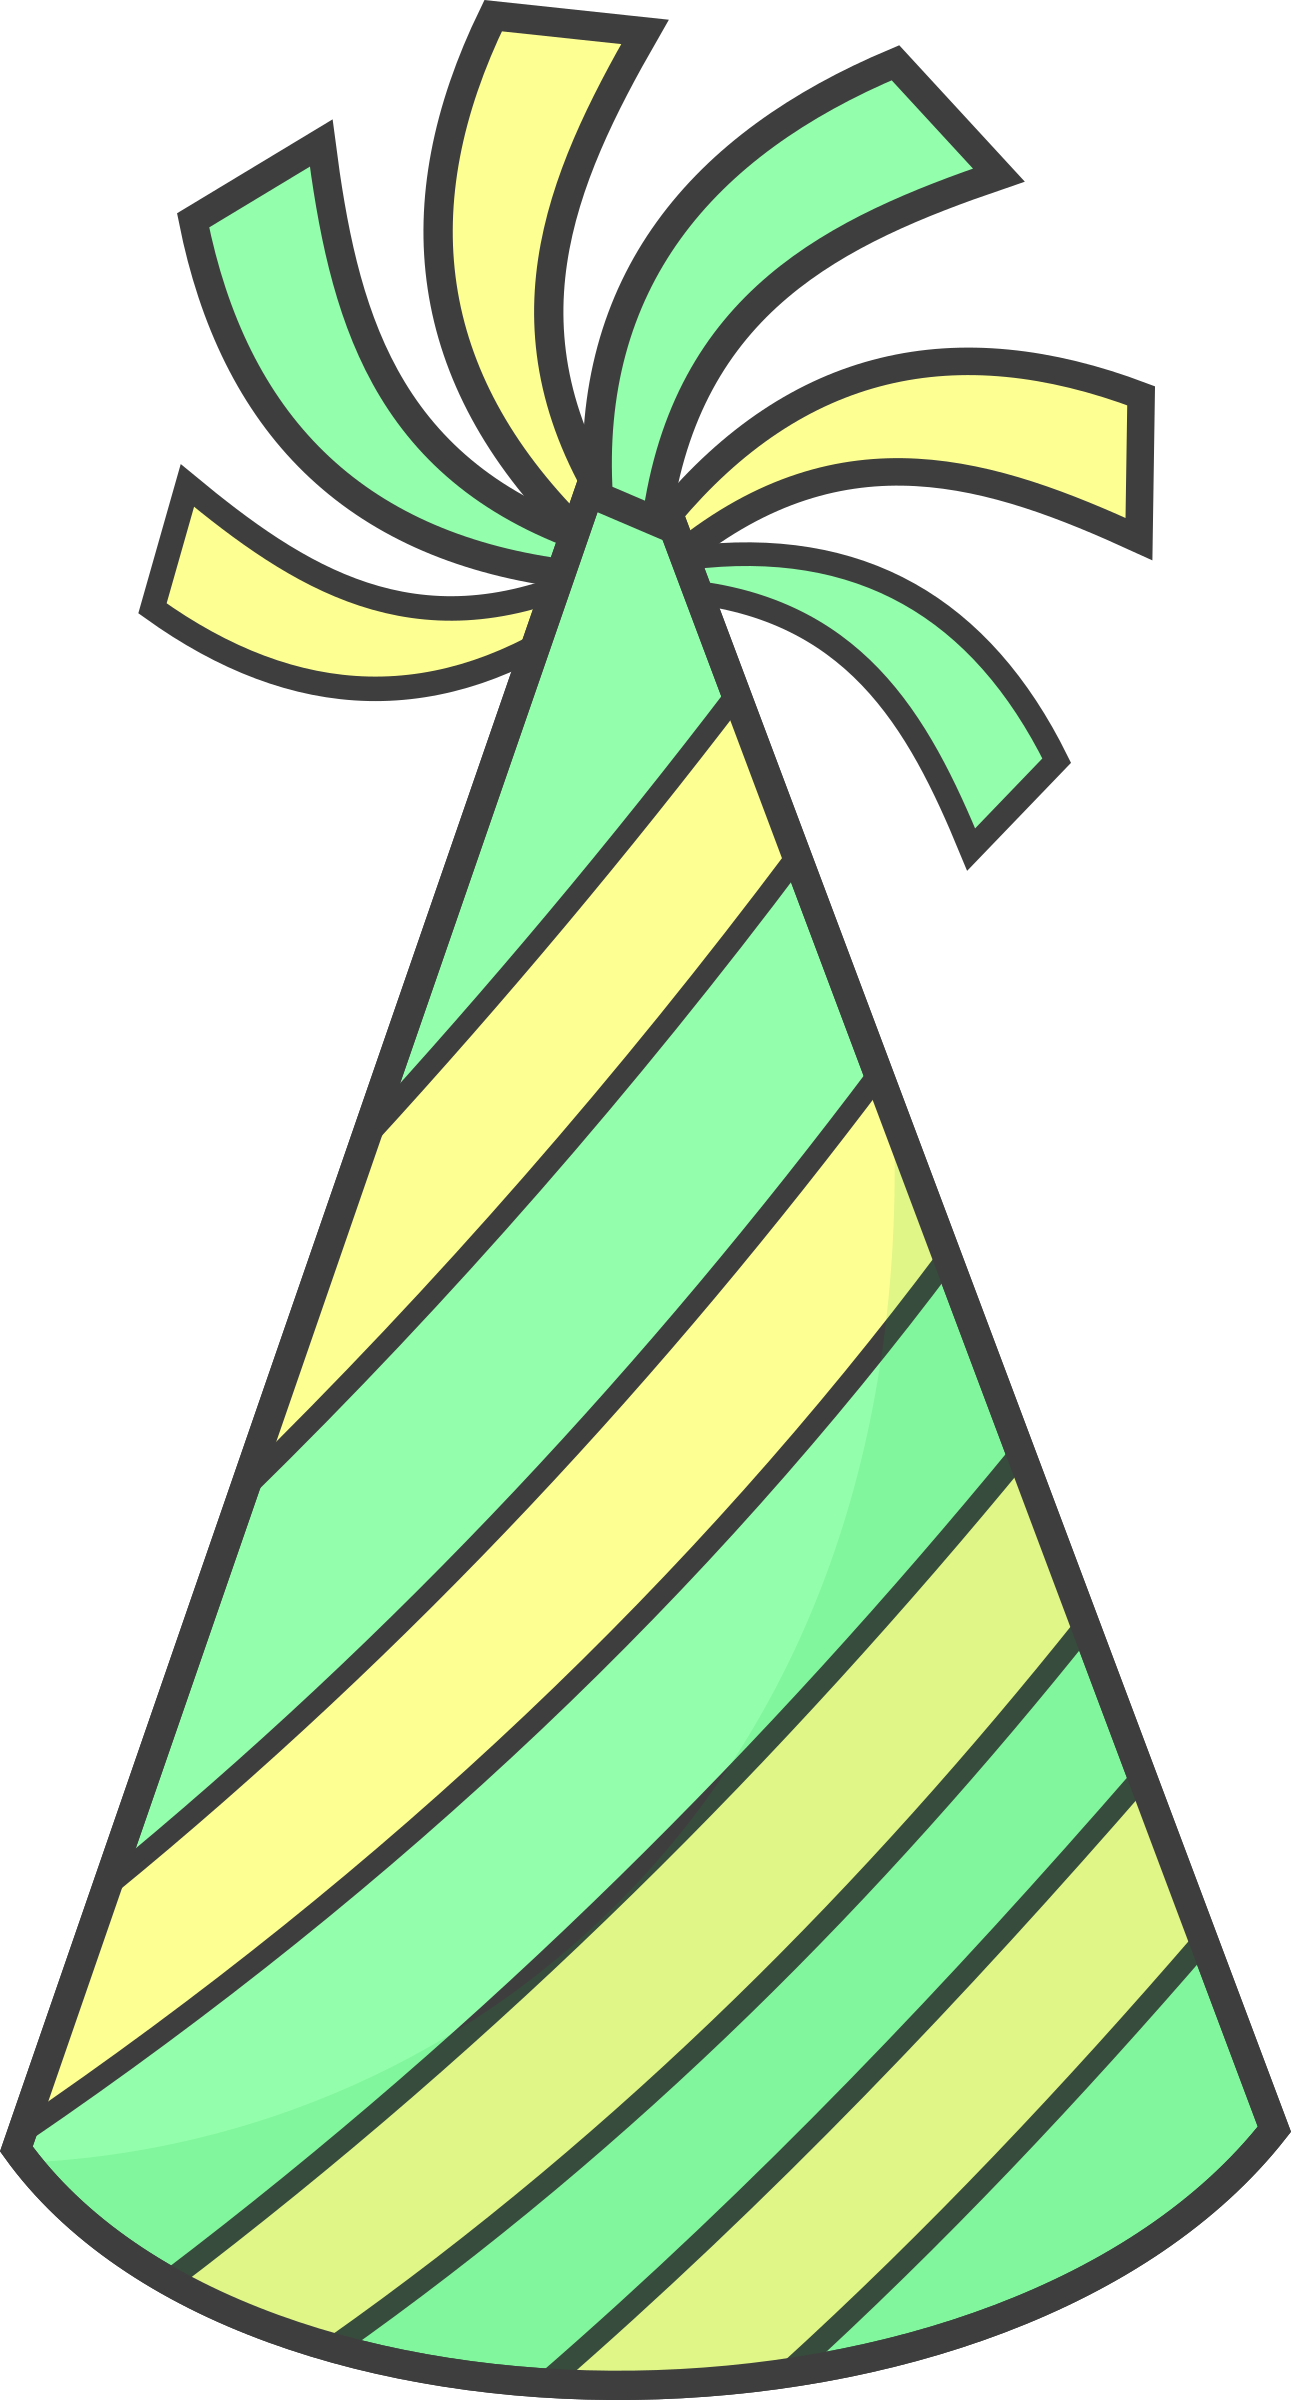 Wednesday clipart yay. Green party hat big